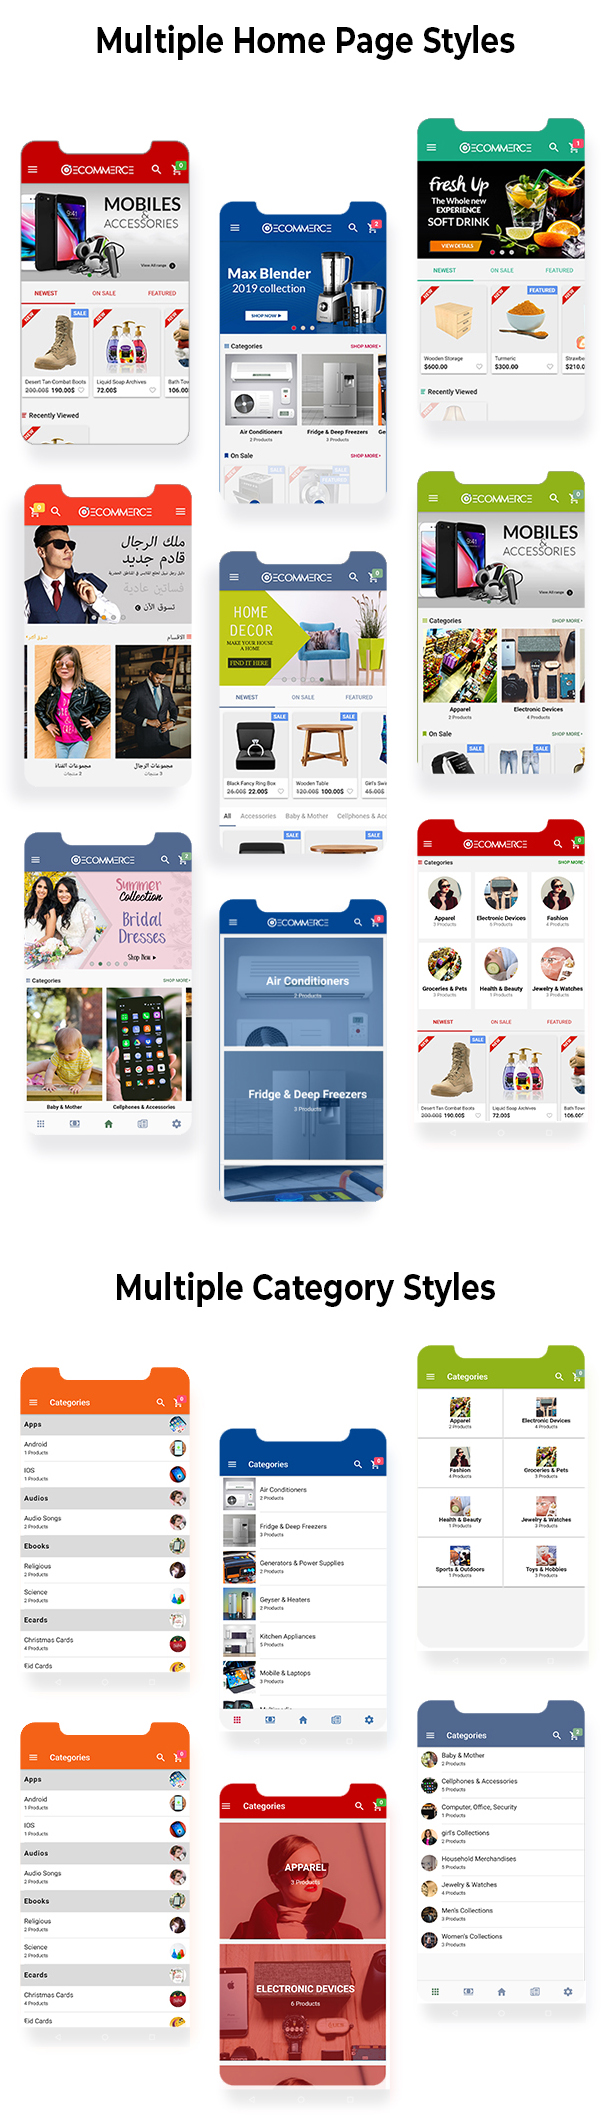 Codecanyon | Ionic Woocommerce - Universal iOS & Android Ecommerce / Store Full Mobile App Free Download #1 free download Codecanyon | Ionic Woocommerce - Universal iOS & Android Ecommerce / Store Full Mobile App Free Download #1 nulled Codecanyon | Ionic Woocommerce - Universal iOS & Android Ecommerce / Store Full Mobile App Free Download #1